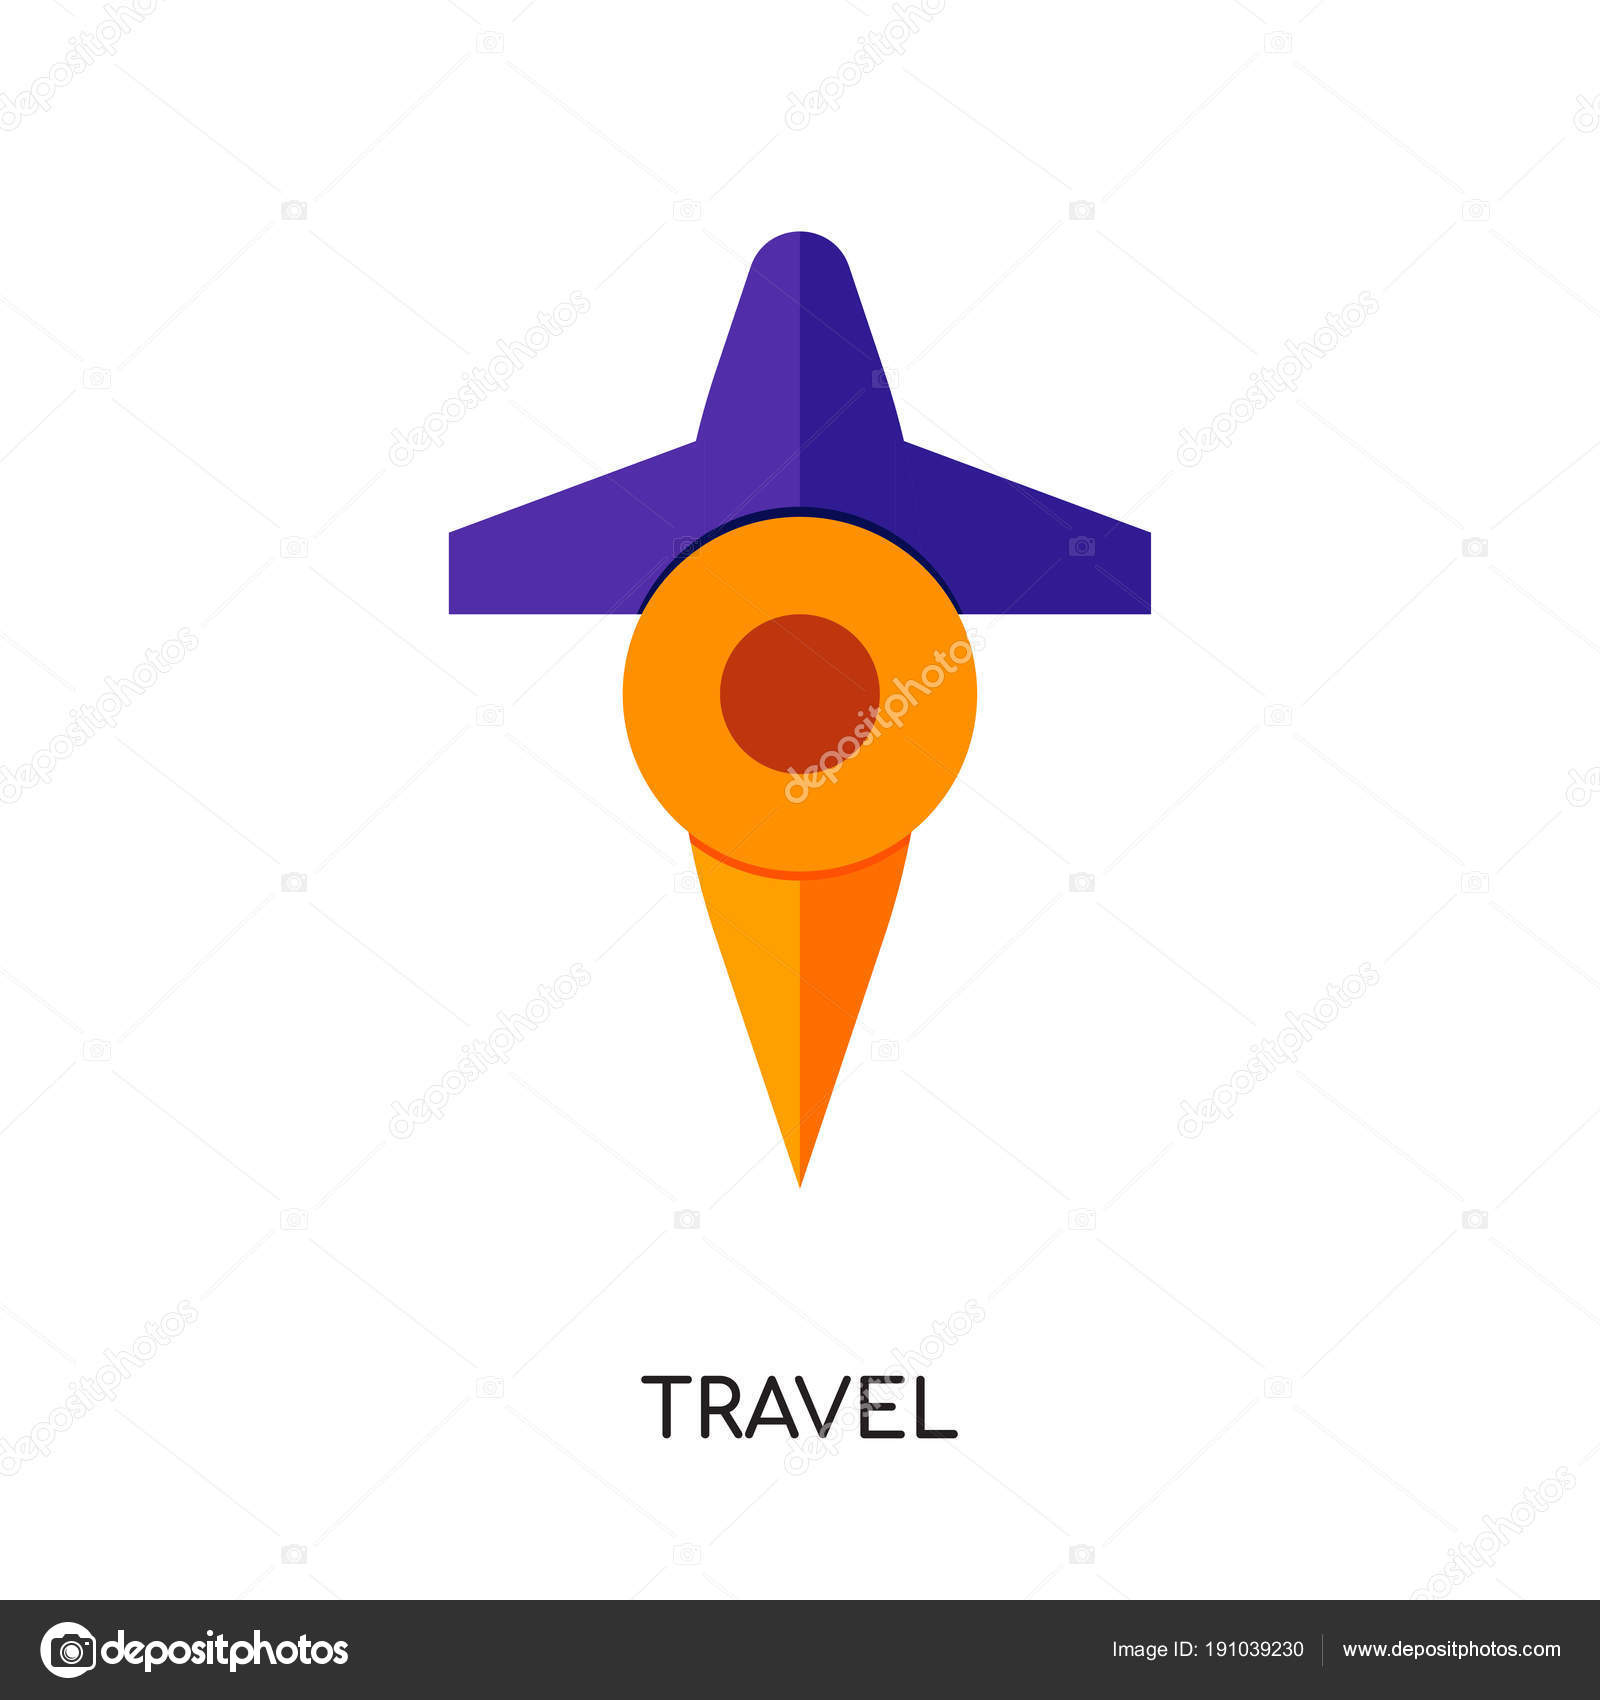 travel logo png isolated on white background for your web mobil stock vector c vectorgalaxy 191039230 https depositphotos com 191039230 stock illustration travel logo png isolated on html